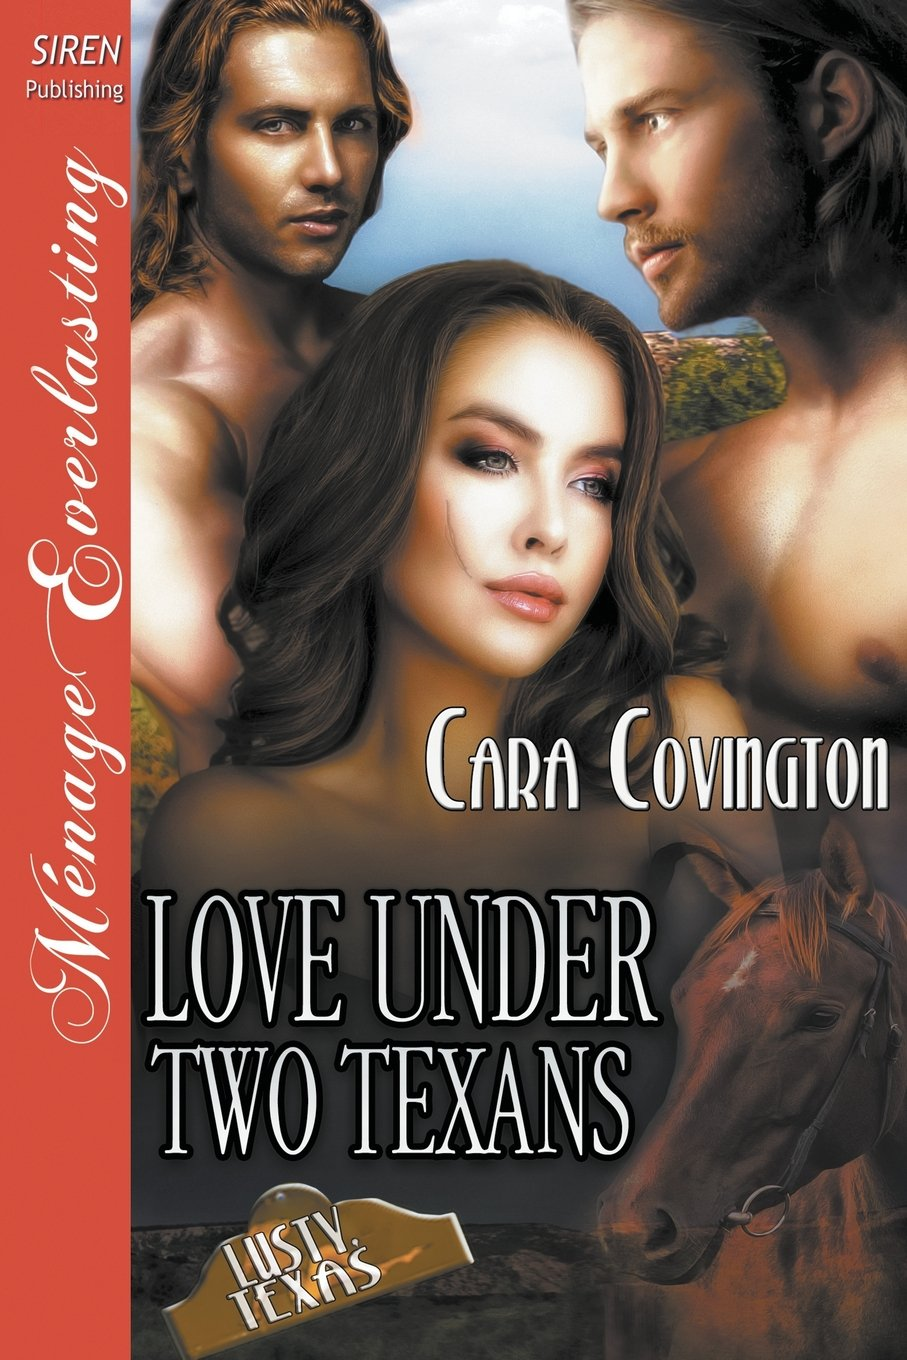 Love Under Two Texans [The Lusty, Texas Collection] (Siren Publishing Ménage Everlasting) pdf